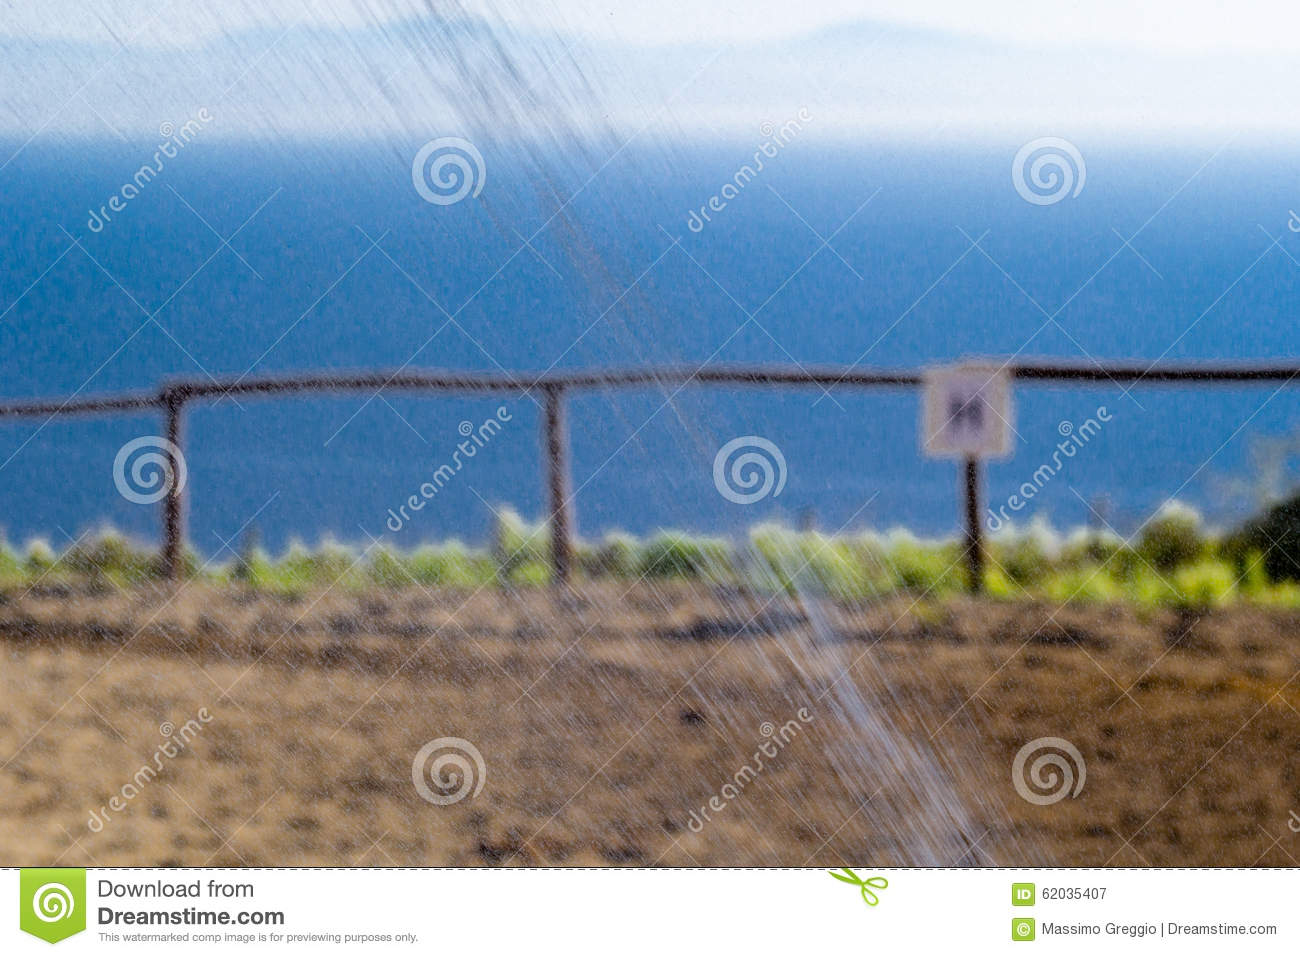 Water Sprinkle Irrigation And Horse Fence Stock Image - Image of ...